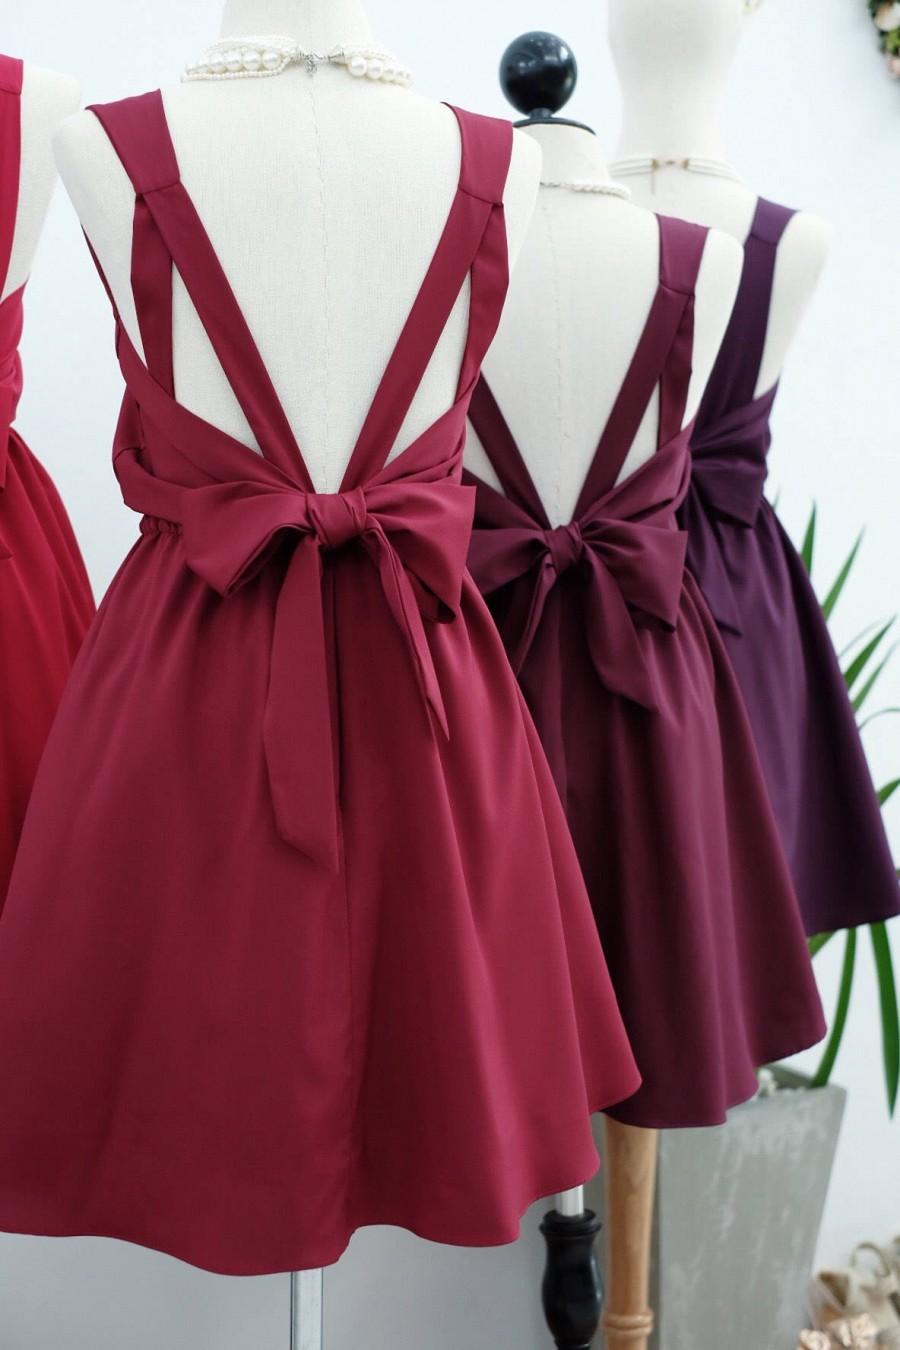 Wedding - Dark red dress Red Burgundy Bridesmaid dress Wedding Prom dress Cocktail Party dress Evening dress Backless bow dress